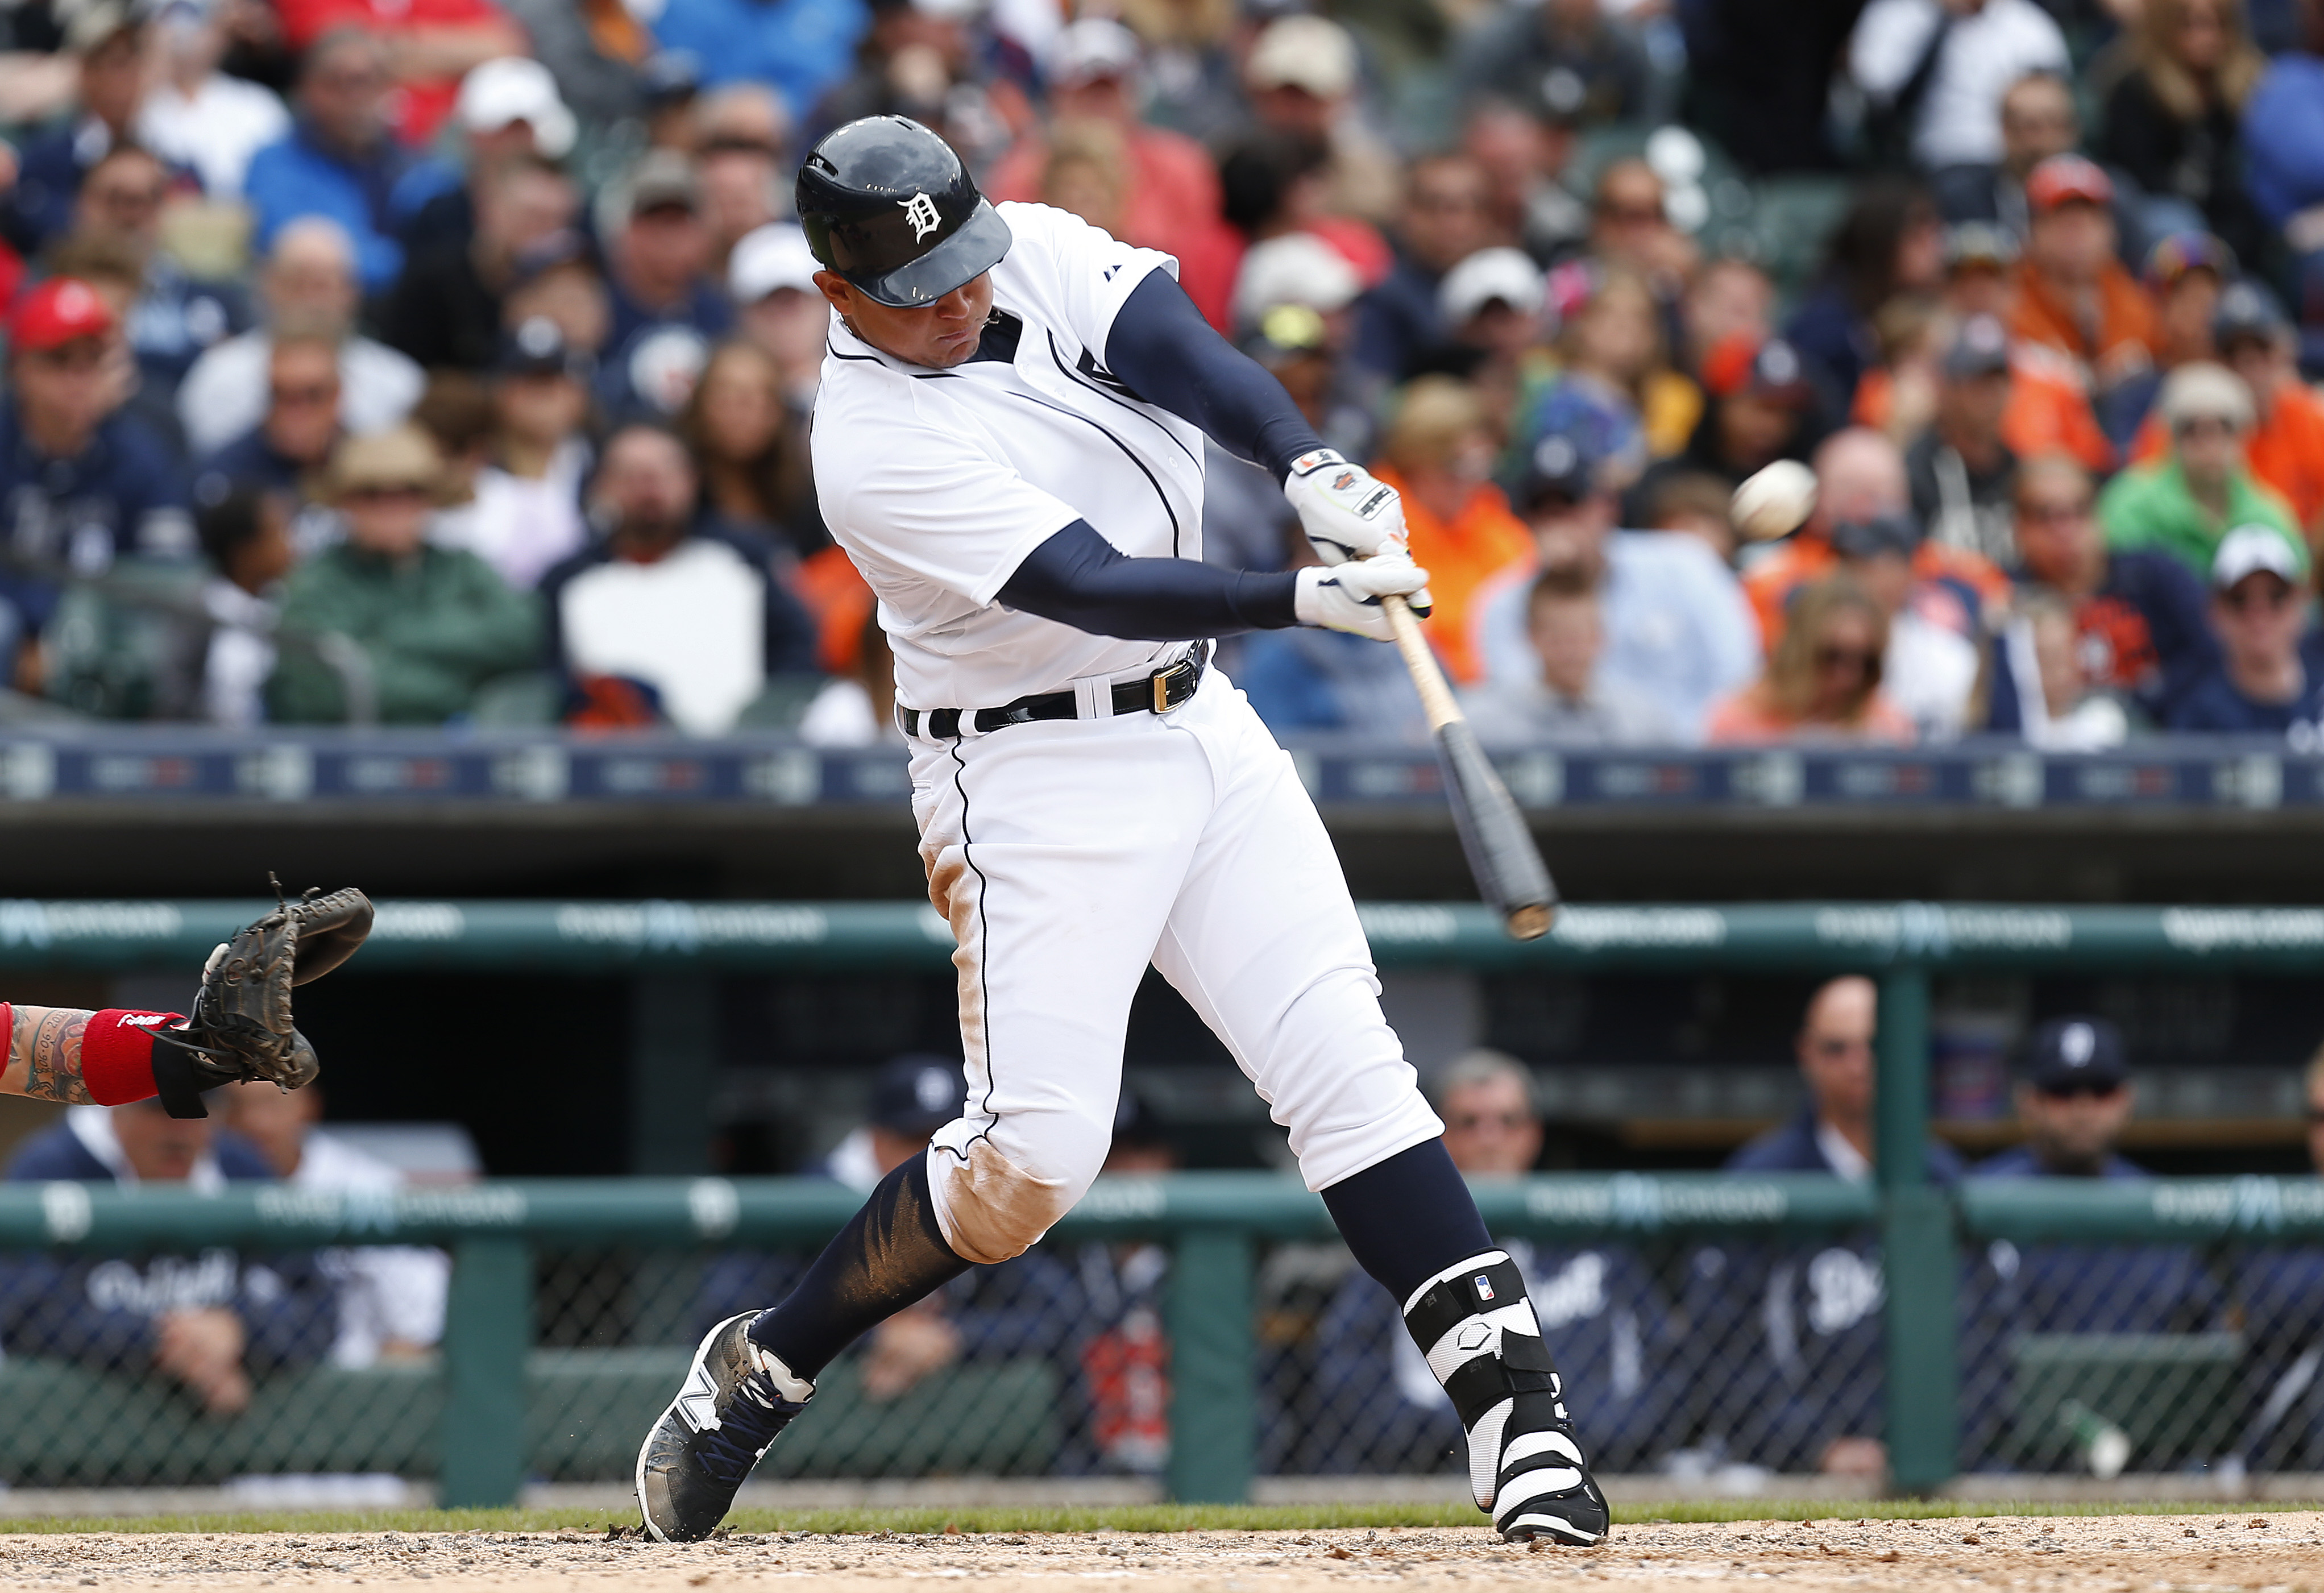 Detroit Tigers' Miguel Cabrera hits a two-ruin home run against the Cleveland Indians in the sixth inning of a baseball game in Detroit, Sunday, April 26, 2015. (AP Photo/Paul Sancya)